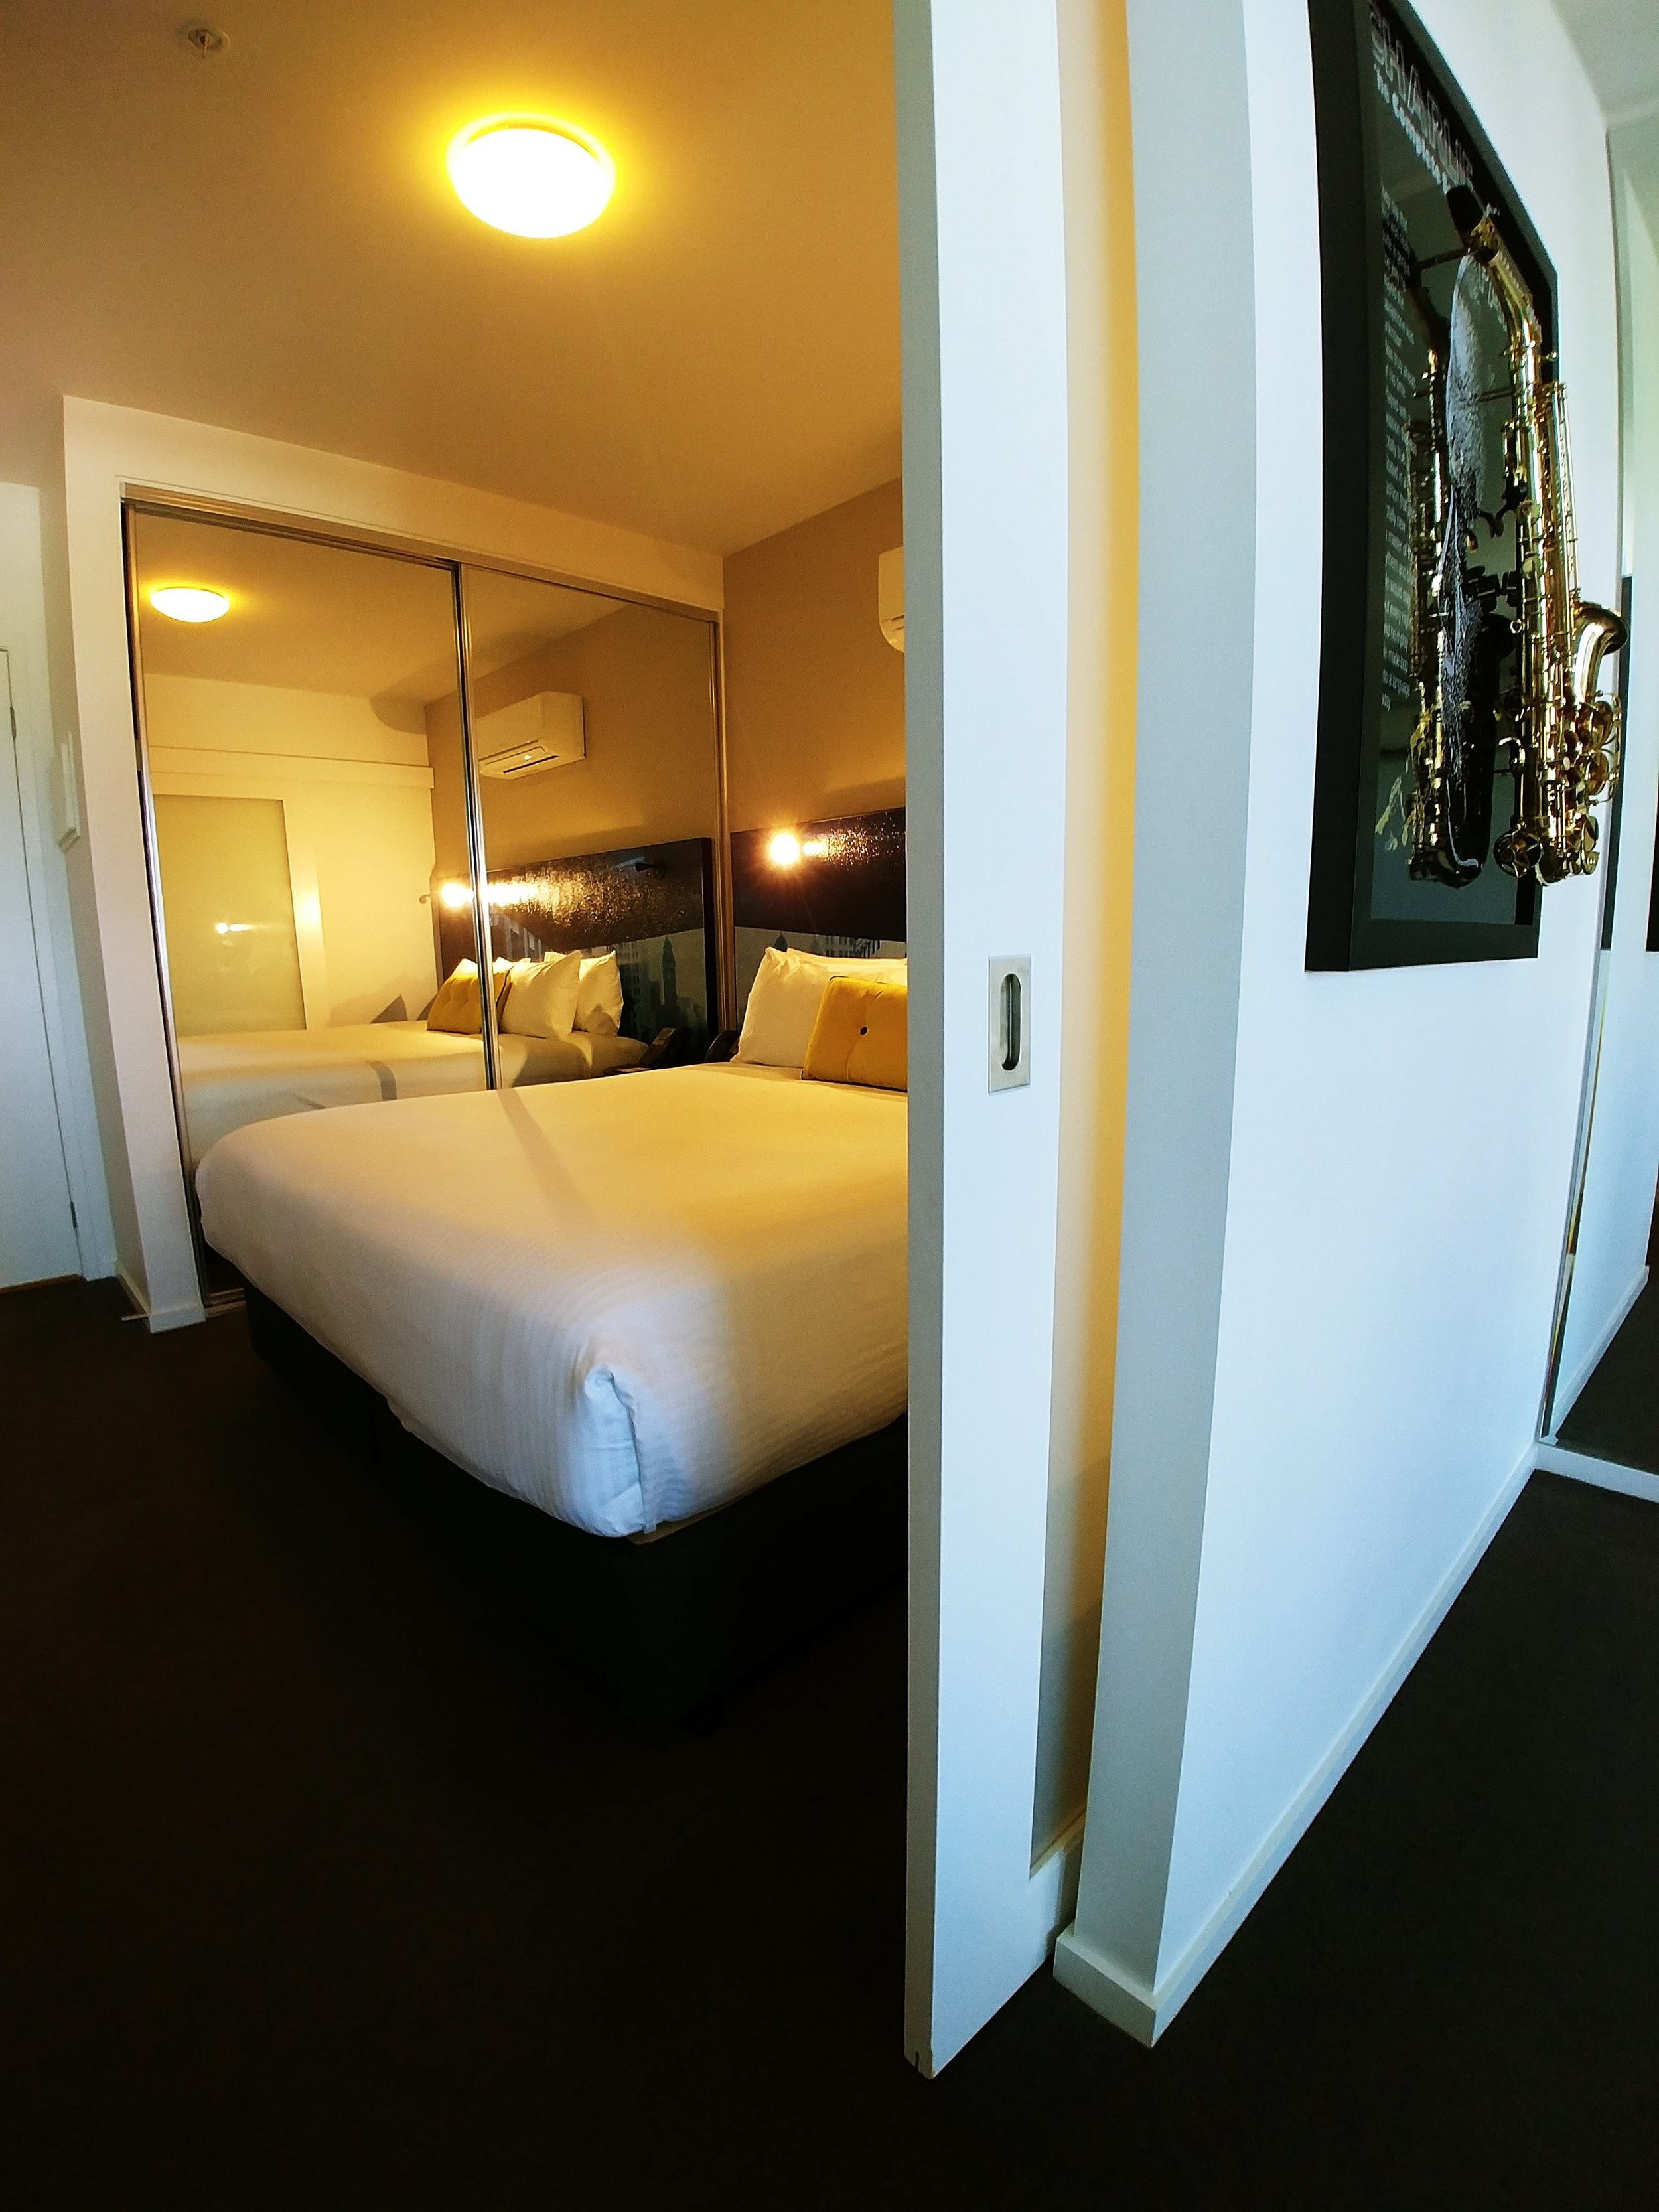 The bedroom is situated between the ensuite bathroom and the lounge.